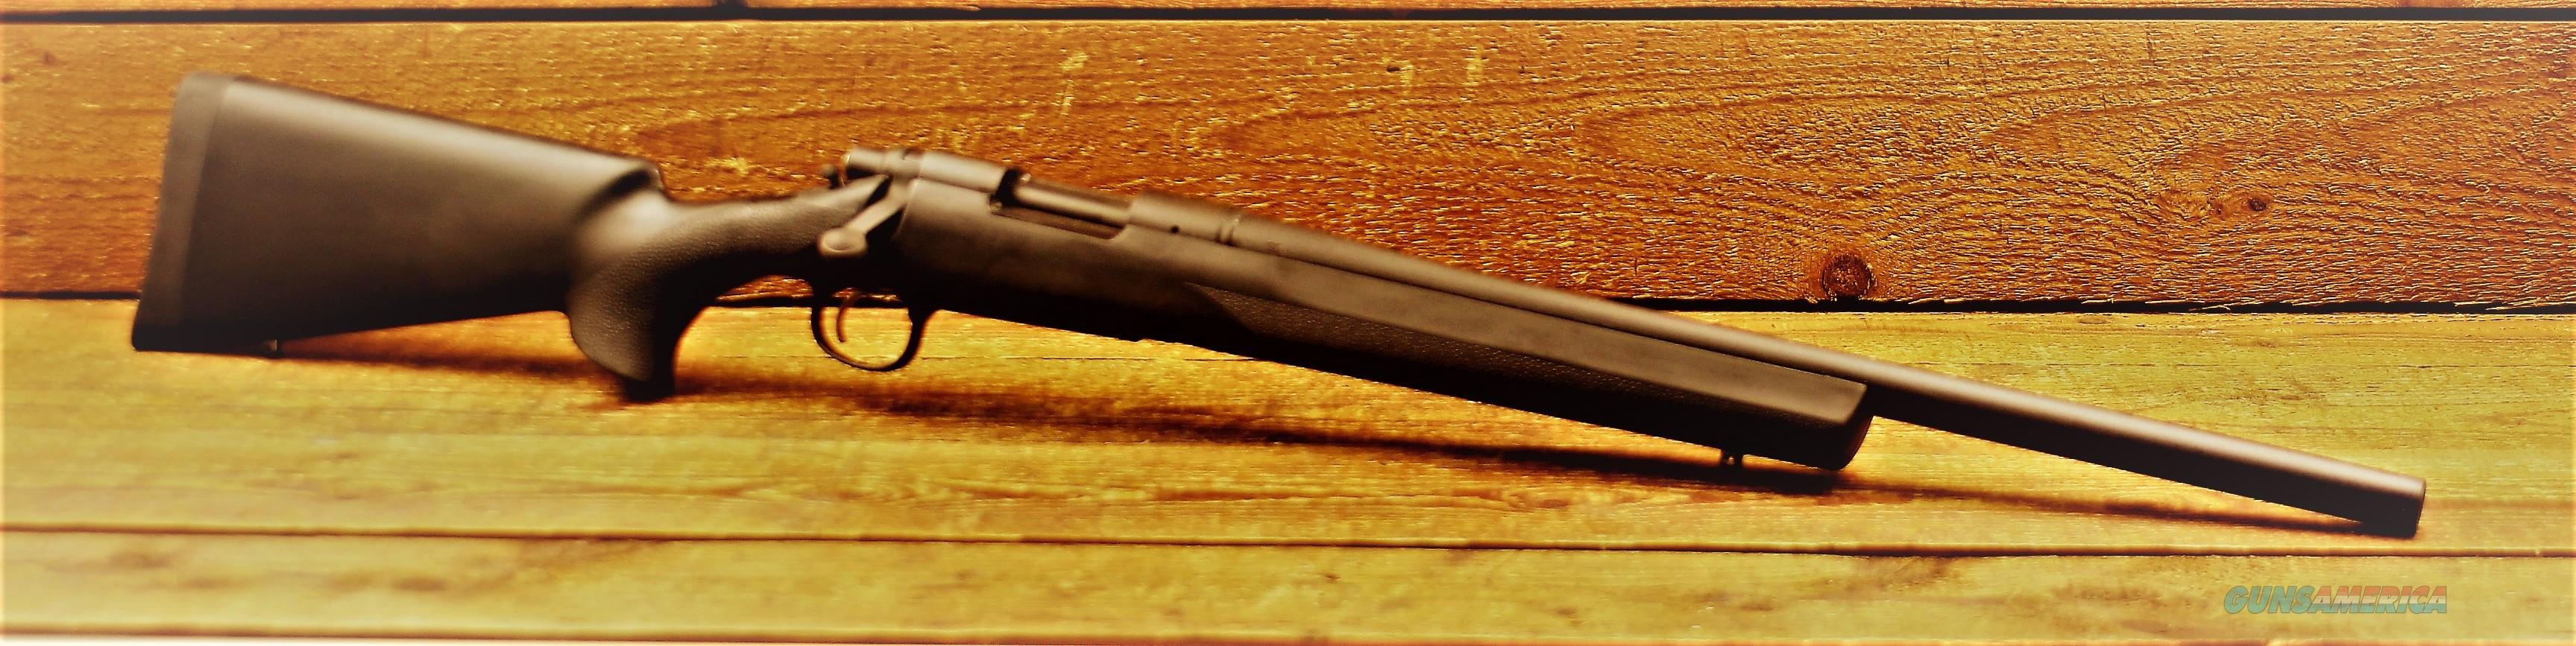 """EASY PAY $59 DOWN LAYAWAY 12 MONTHLY PAYMENTS Remington Model 700 SPS Tactical  .308 Winchester 20"""" Hunting Target Heavy Barrel 1:12 twist 4 Rounds Hogue Overmolded Stock Black Finish HUNTER heavy barrel X-Mark Pro REM 84207 047700842073   Guns > Rifles > Remington Rifles - Modern > Model 700 > Tactical"""